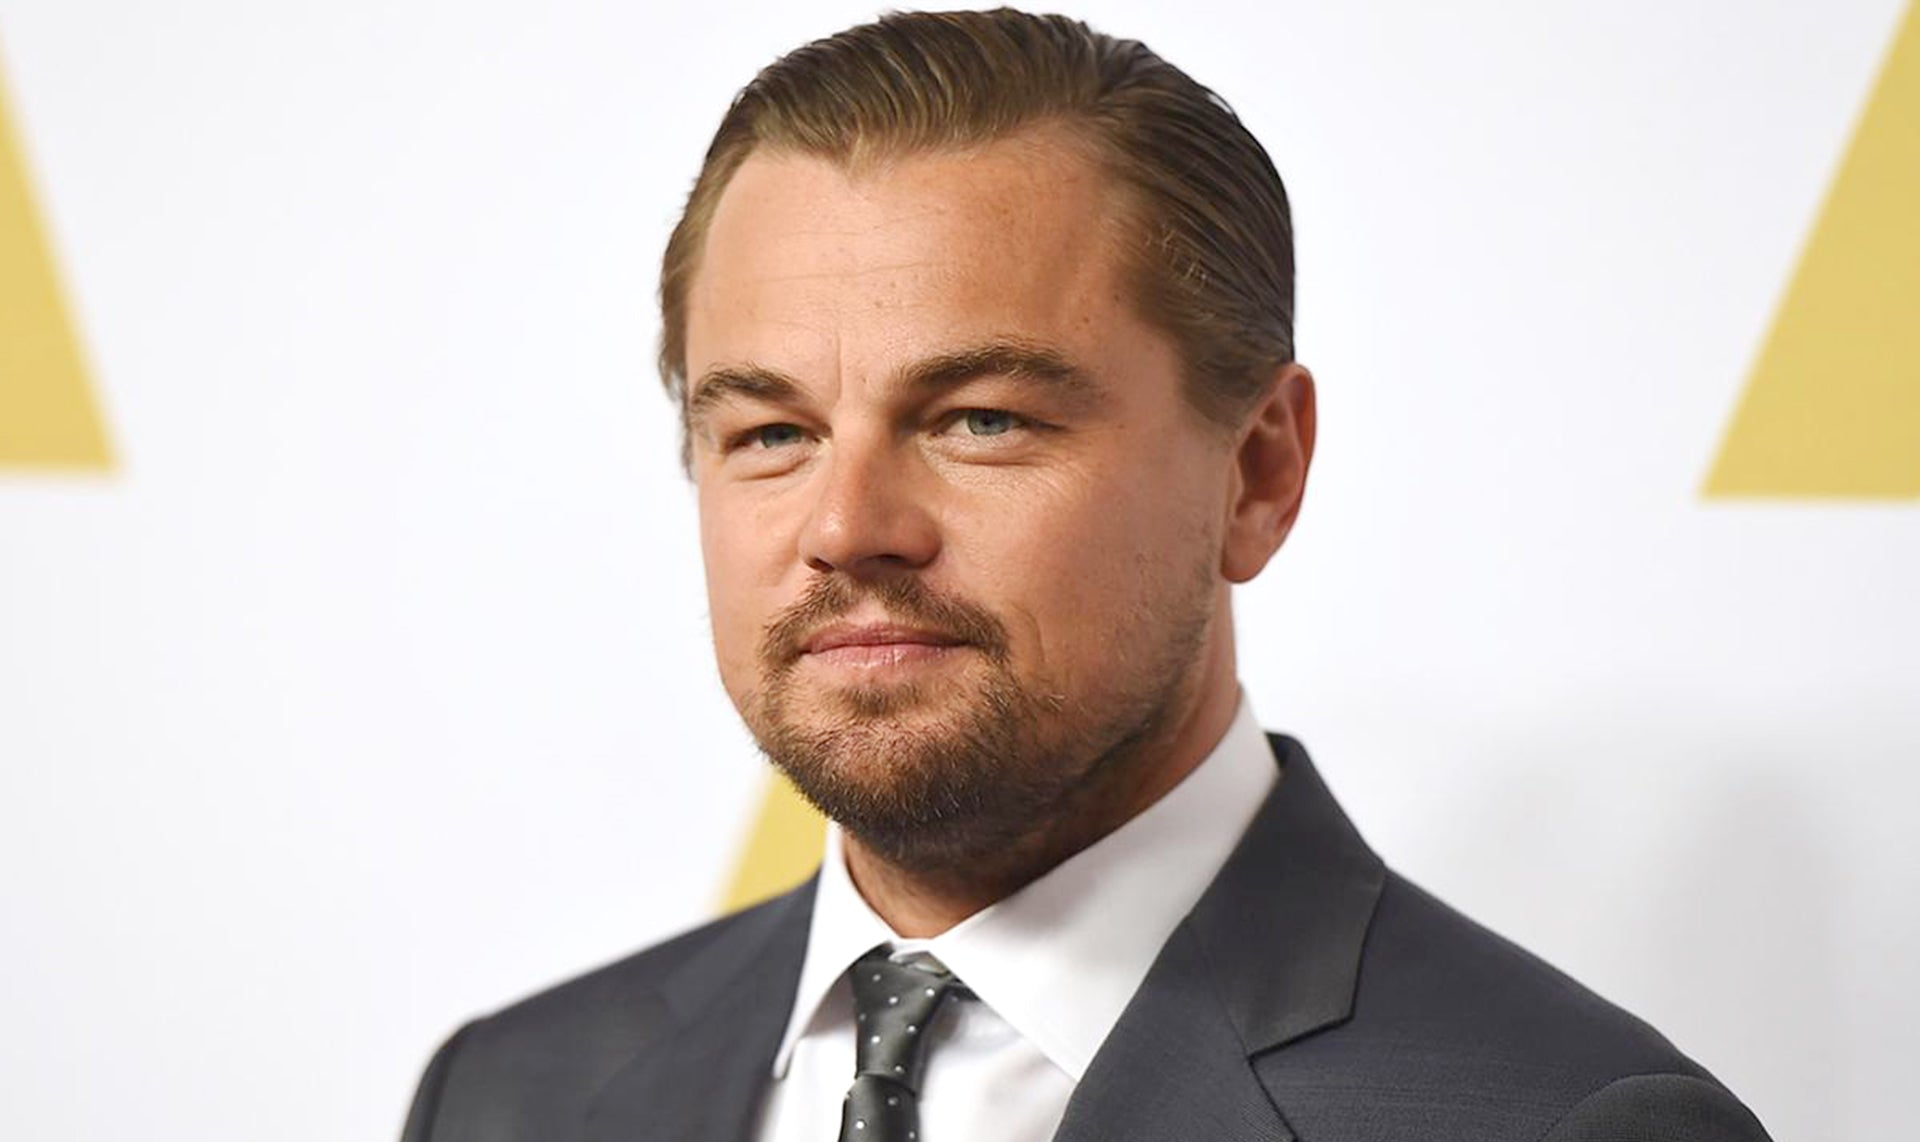 How to- Leonardo DiCaprio's Hairstyle - The Side swept